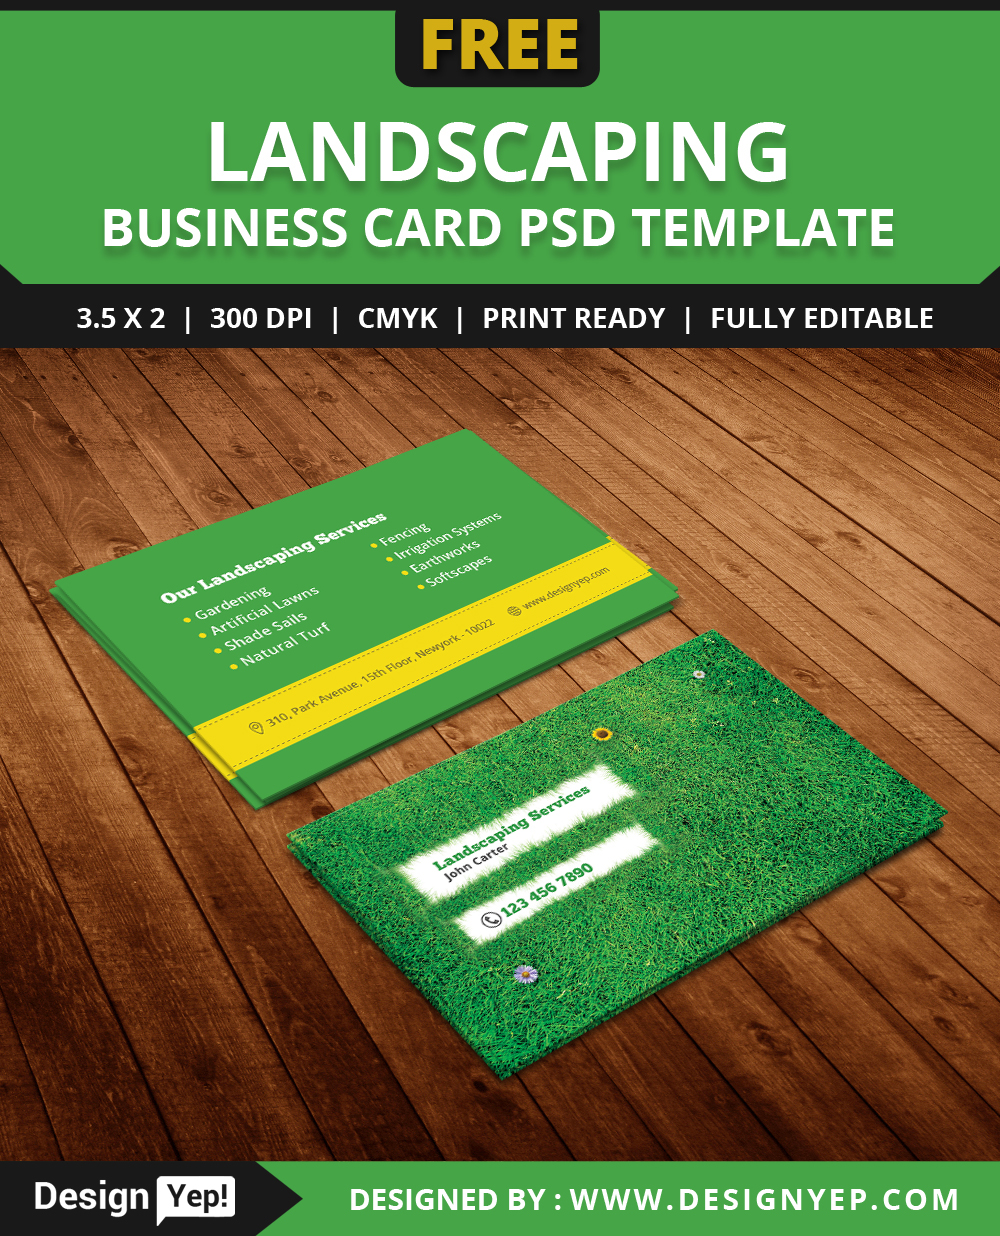 Free landscaping business card template psd on behance wajeb Choice Image